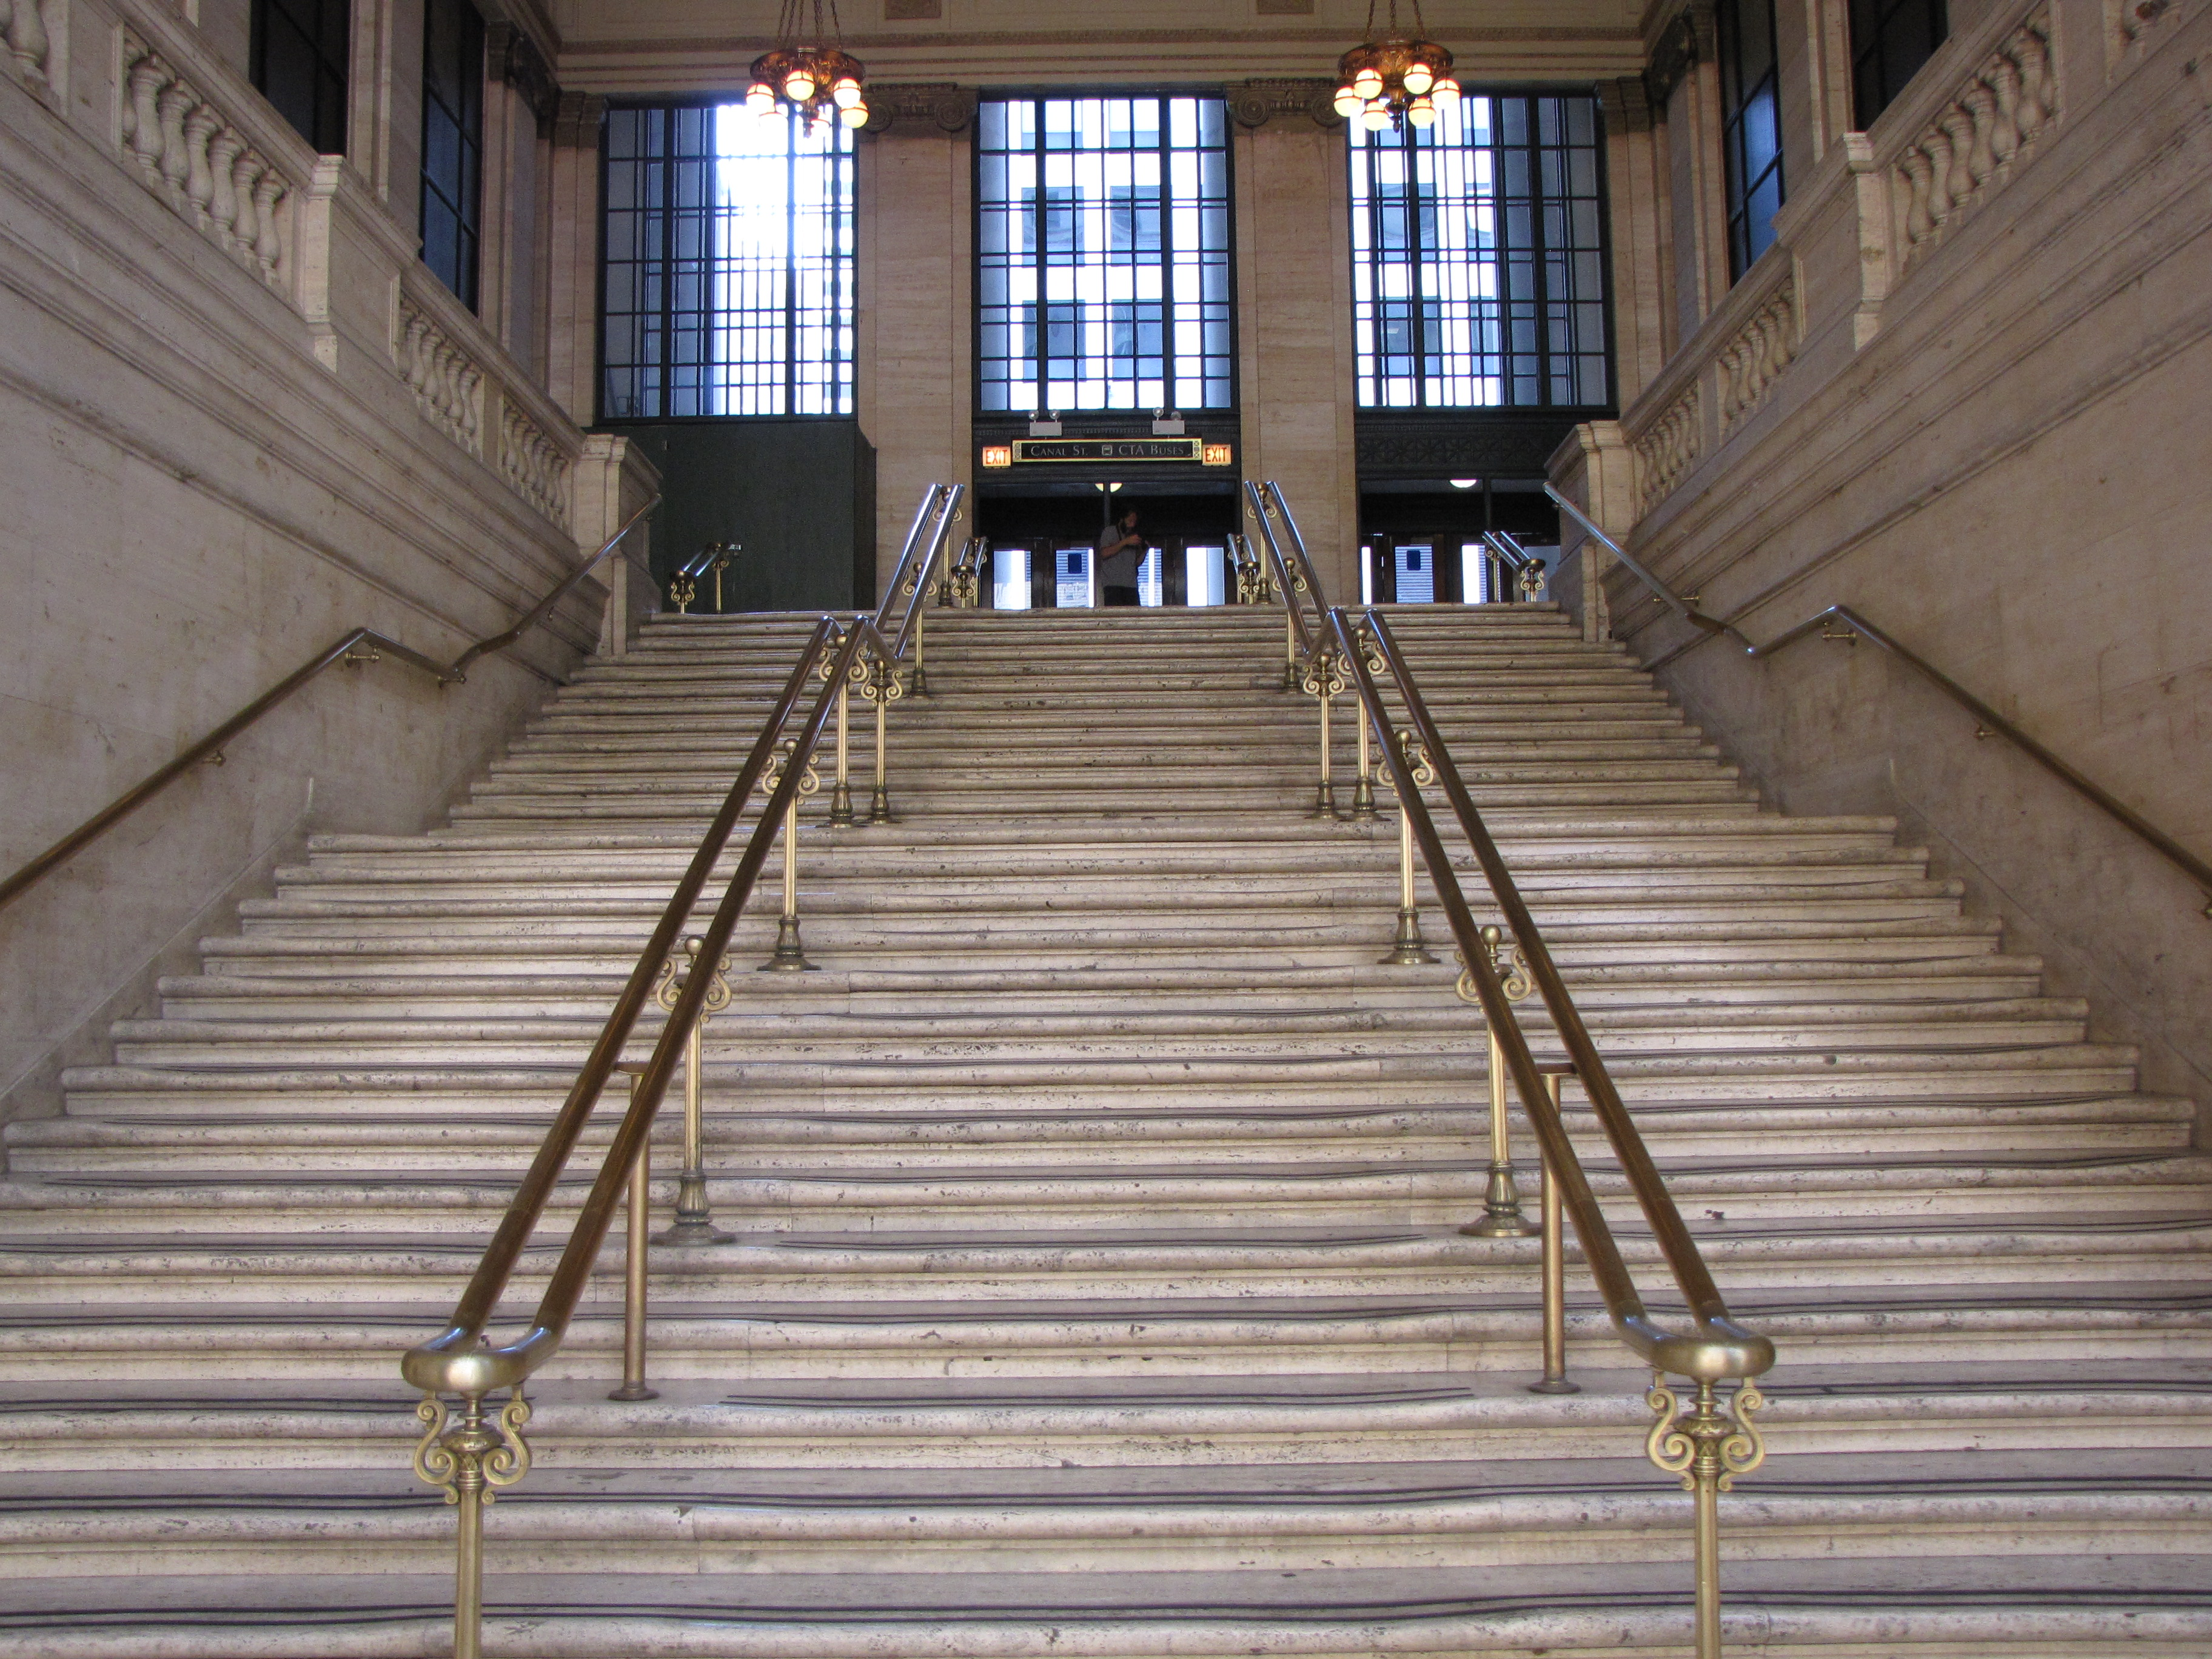 Fichier:Stairs leading out of main hall, Chicago Union Station.jpg ...